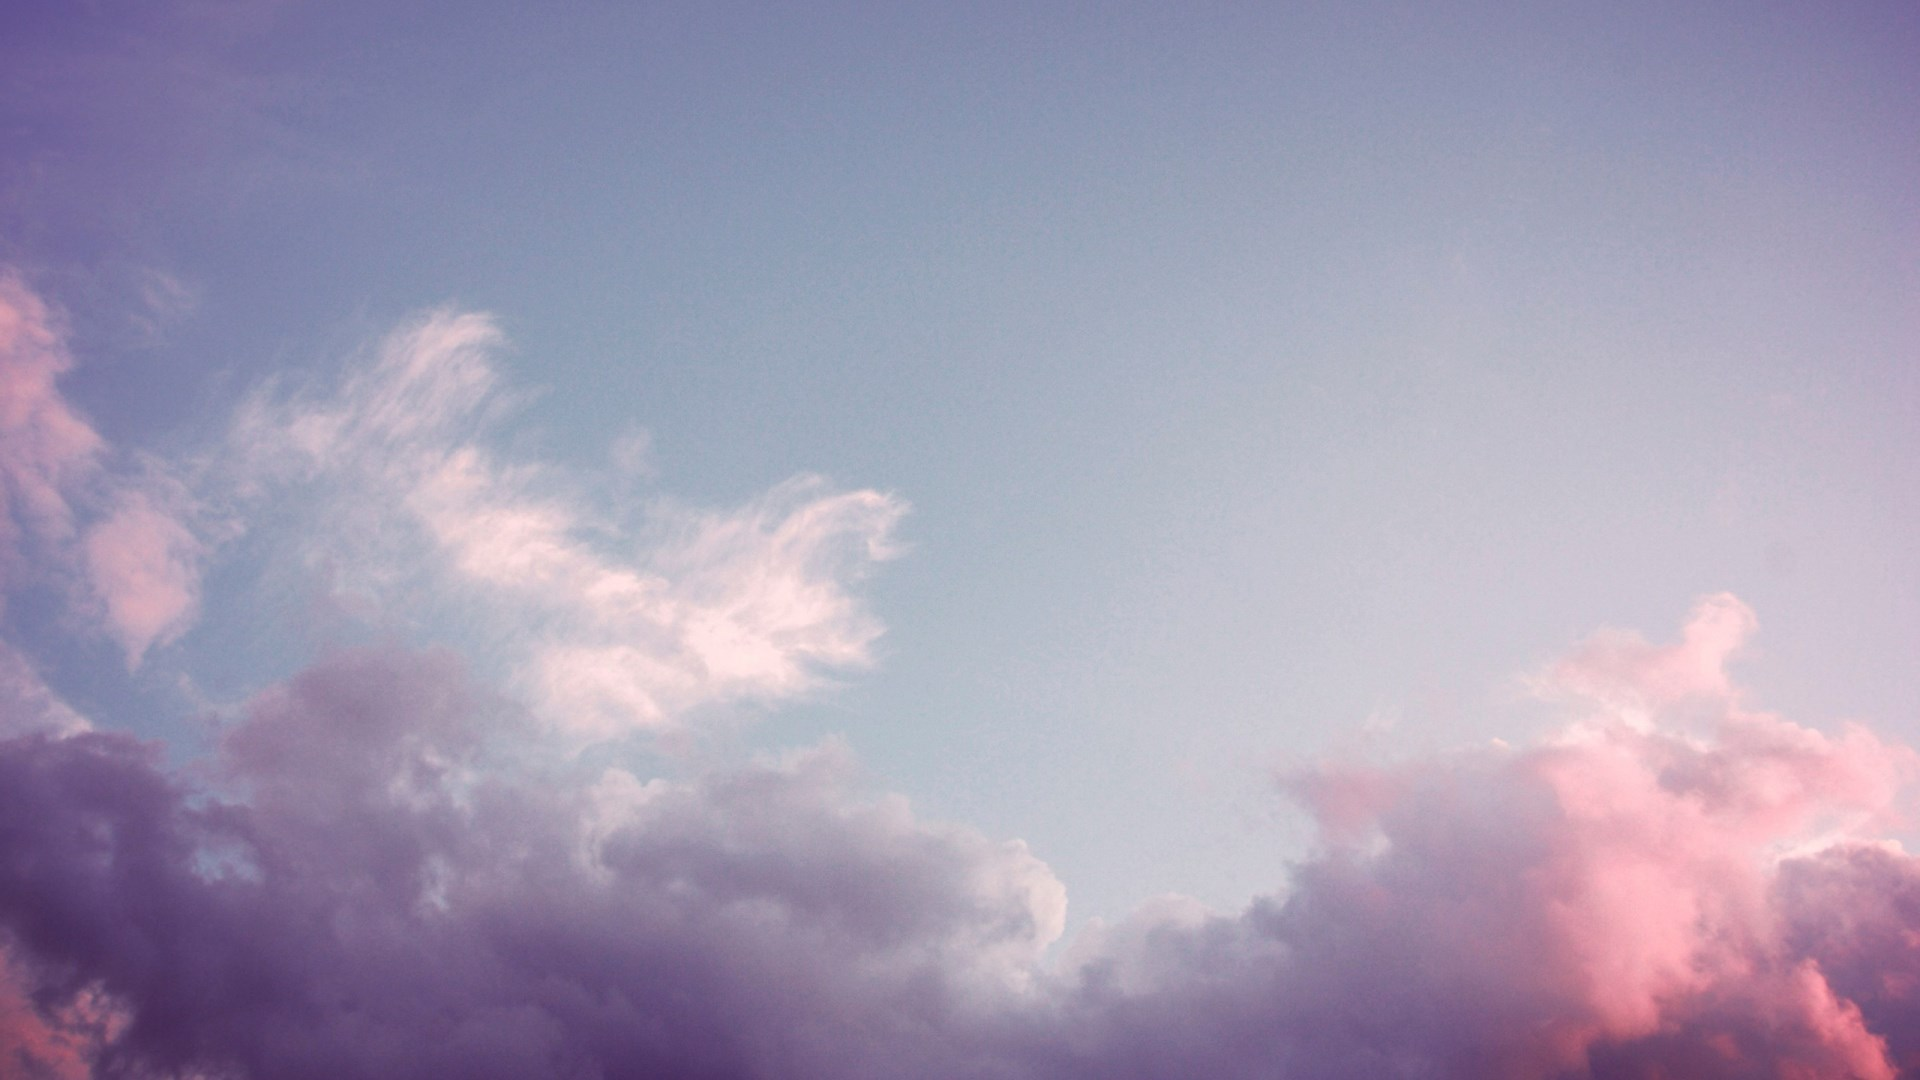 1920-x-1080-px-free-pictures-sky-by-Corvin-MacDonald-for-TW-com-wallpaper-wp360725